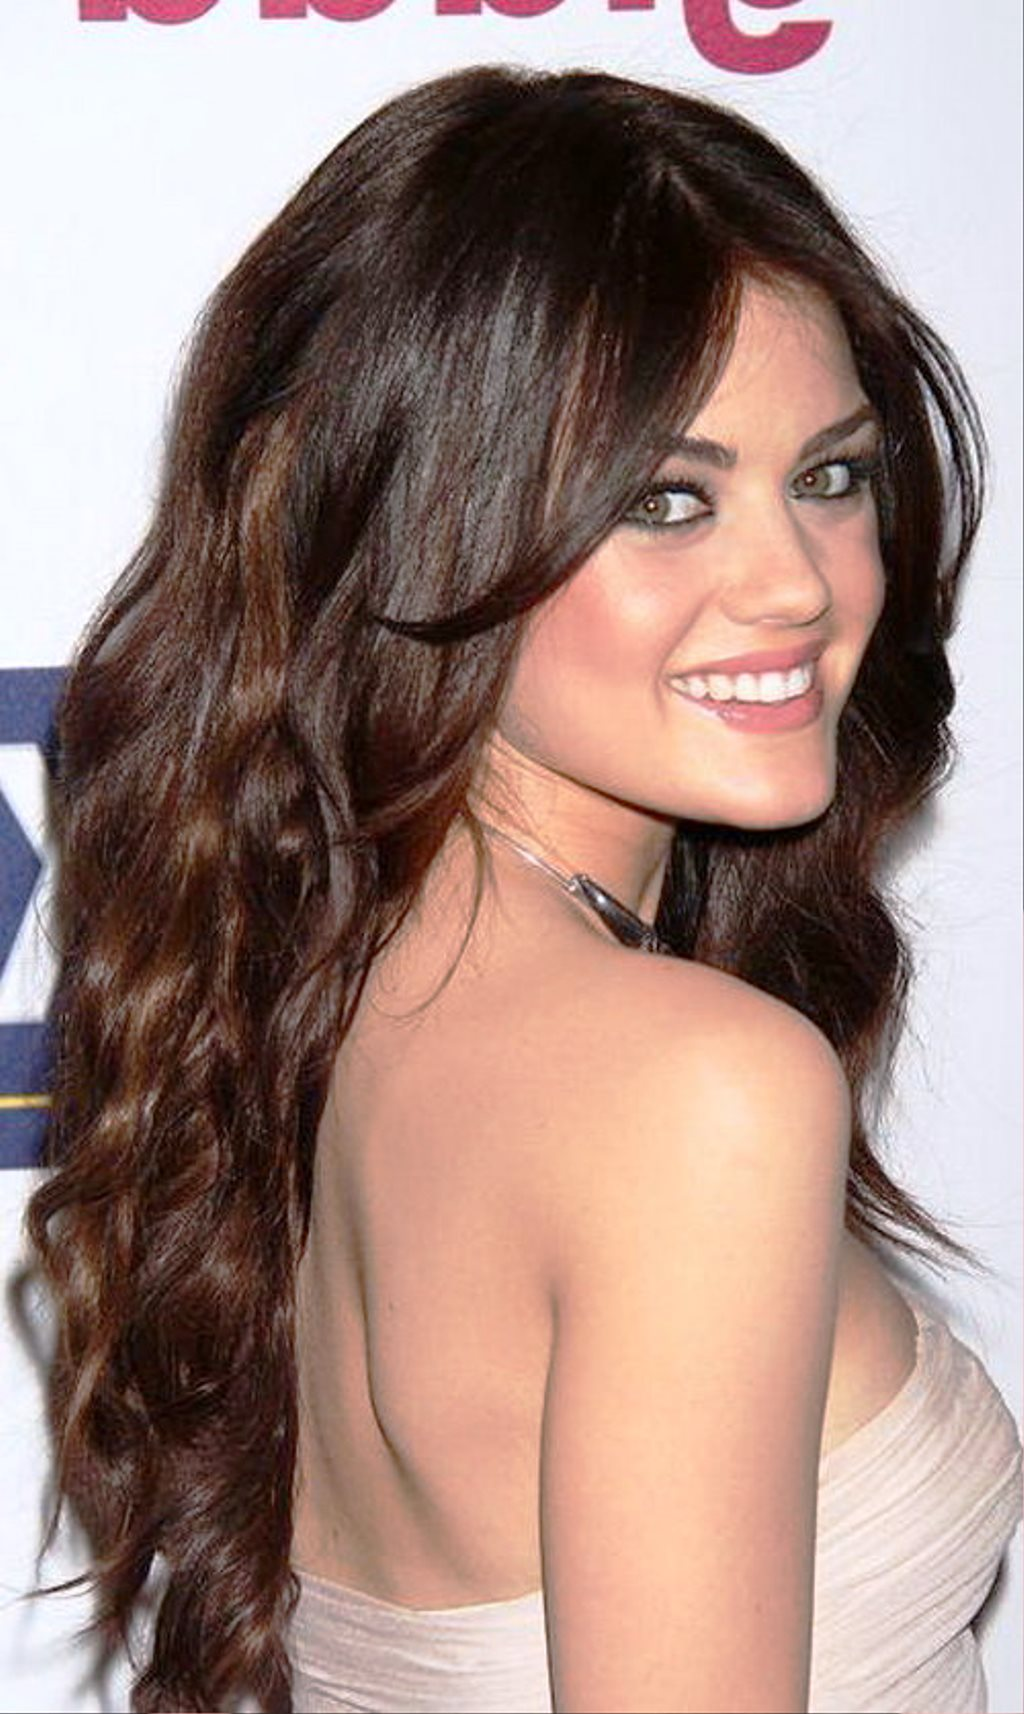 Prime Pictures Of Long Wavy Hairstyles With Hair Extensions Short Hairstyles Gunalazisus